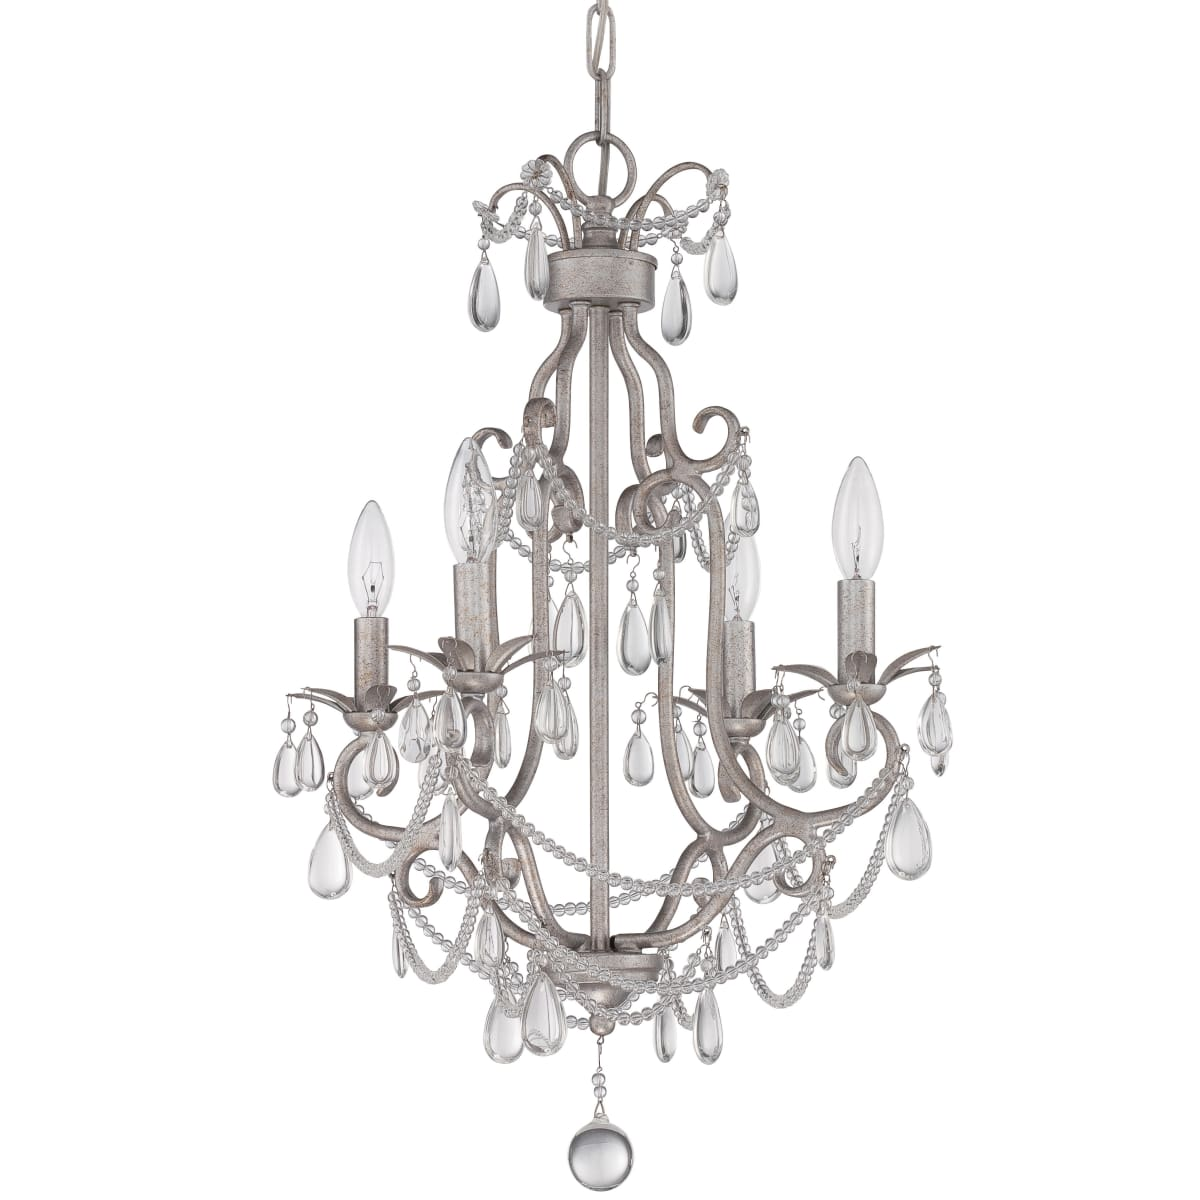 Craftmade Antique Silver chandelier with crystals - a gorgeous lighting option for a romantic French inspired space.Charming European Country Interior Design Inspiration: June Favorites, Part 2 Shares French Country Photos of Interiors to Inspire As Well As Decorating Finds and Tips Shared in June.